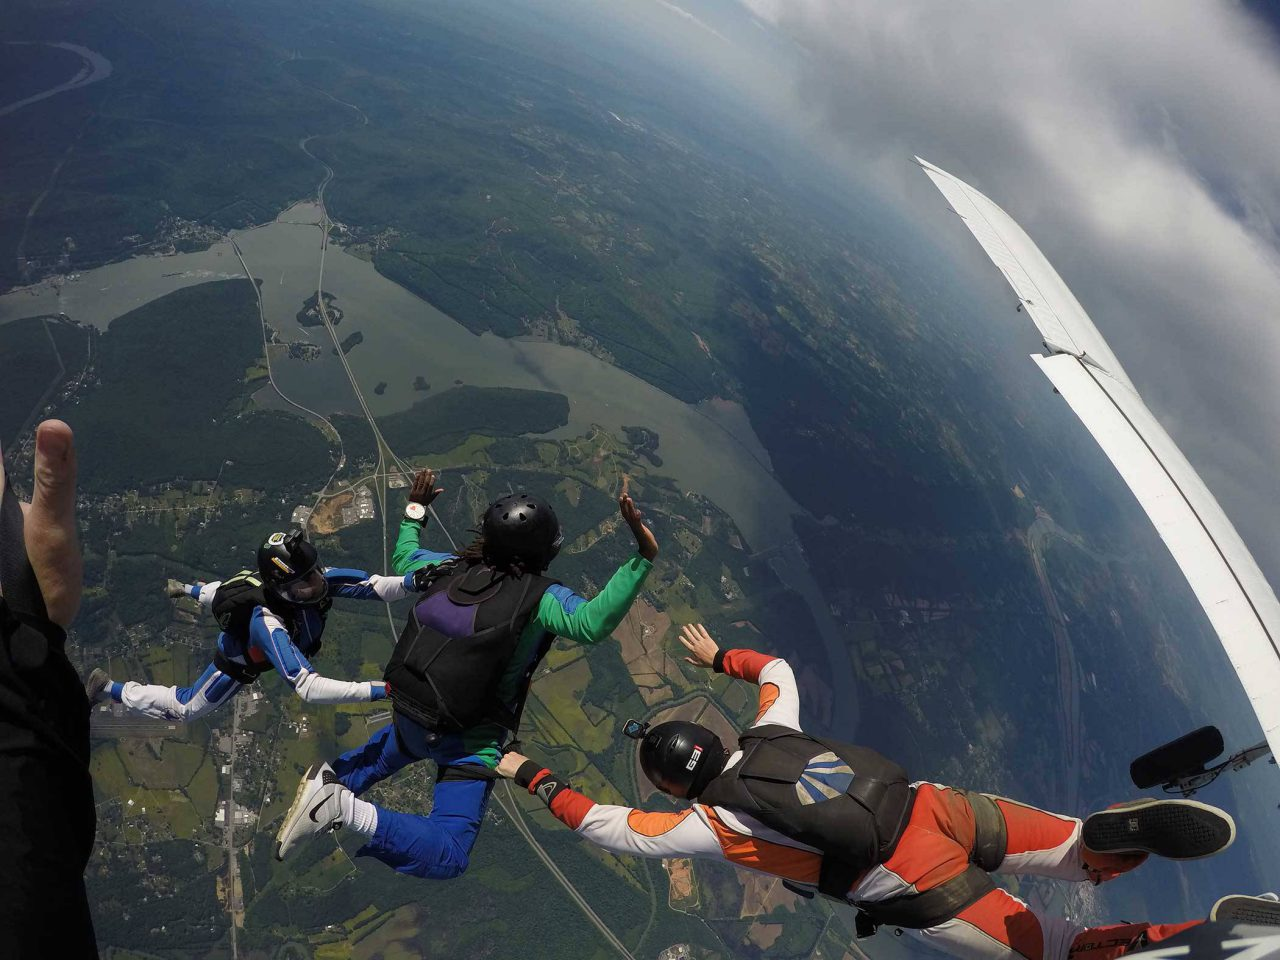 AFF student wearing green and blue skydiving gear while in free fall